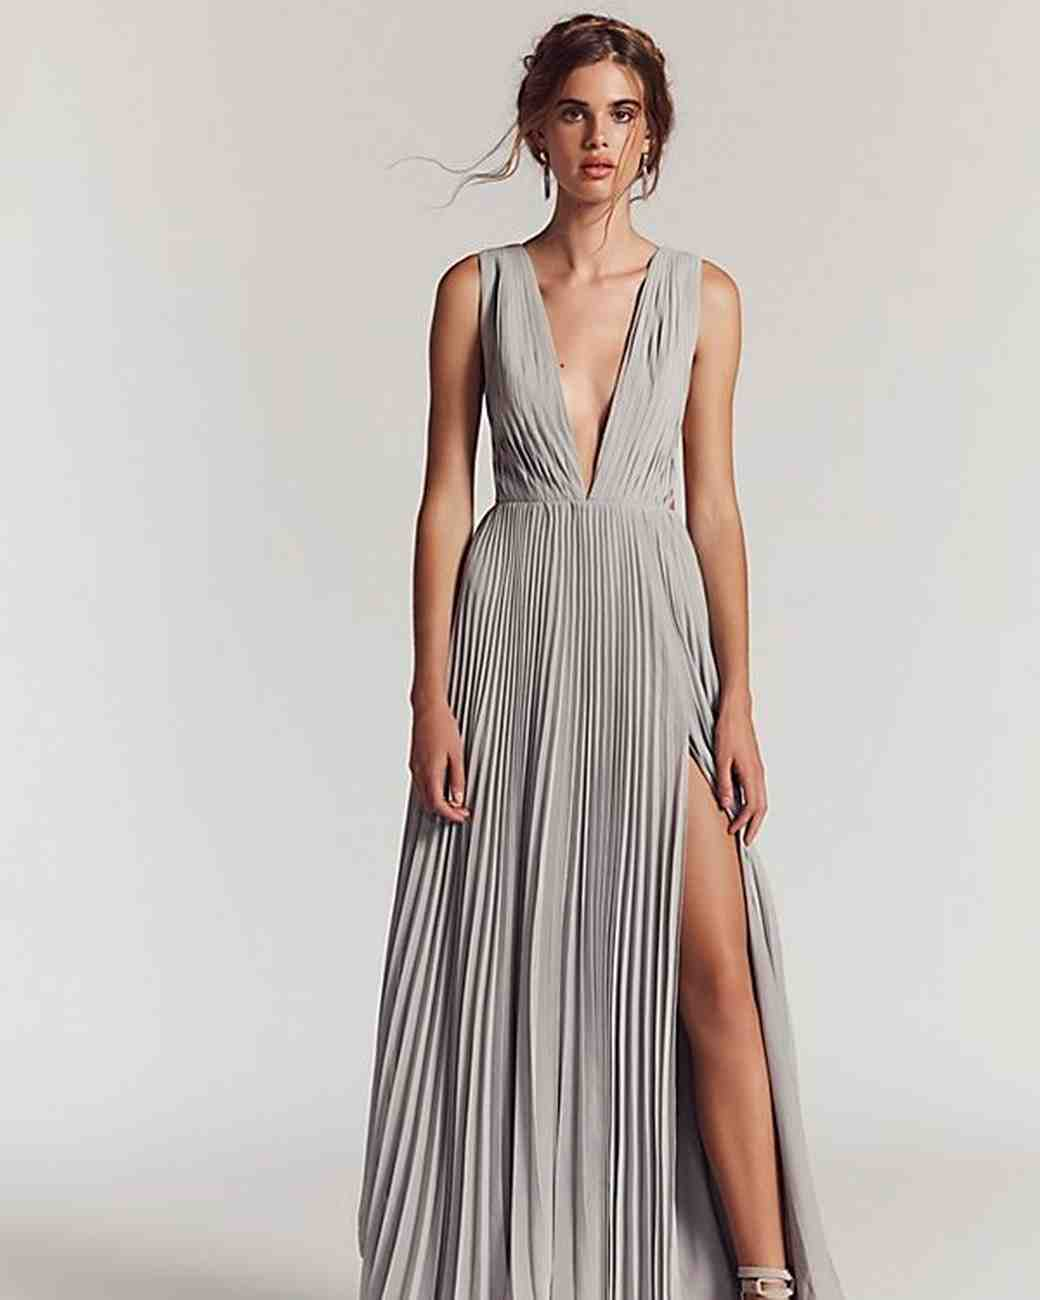 Long Gowns For Wedding Guests: 25 Beautiful Dresses To Wear As A Wedding Guest This Fall